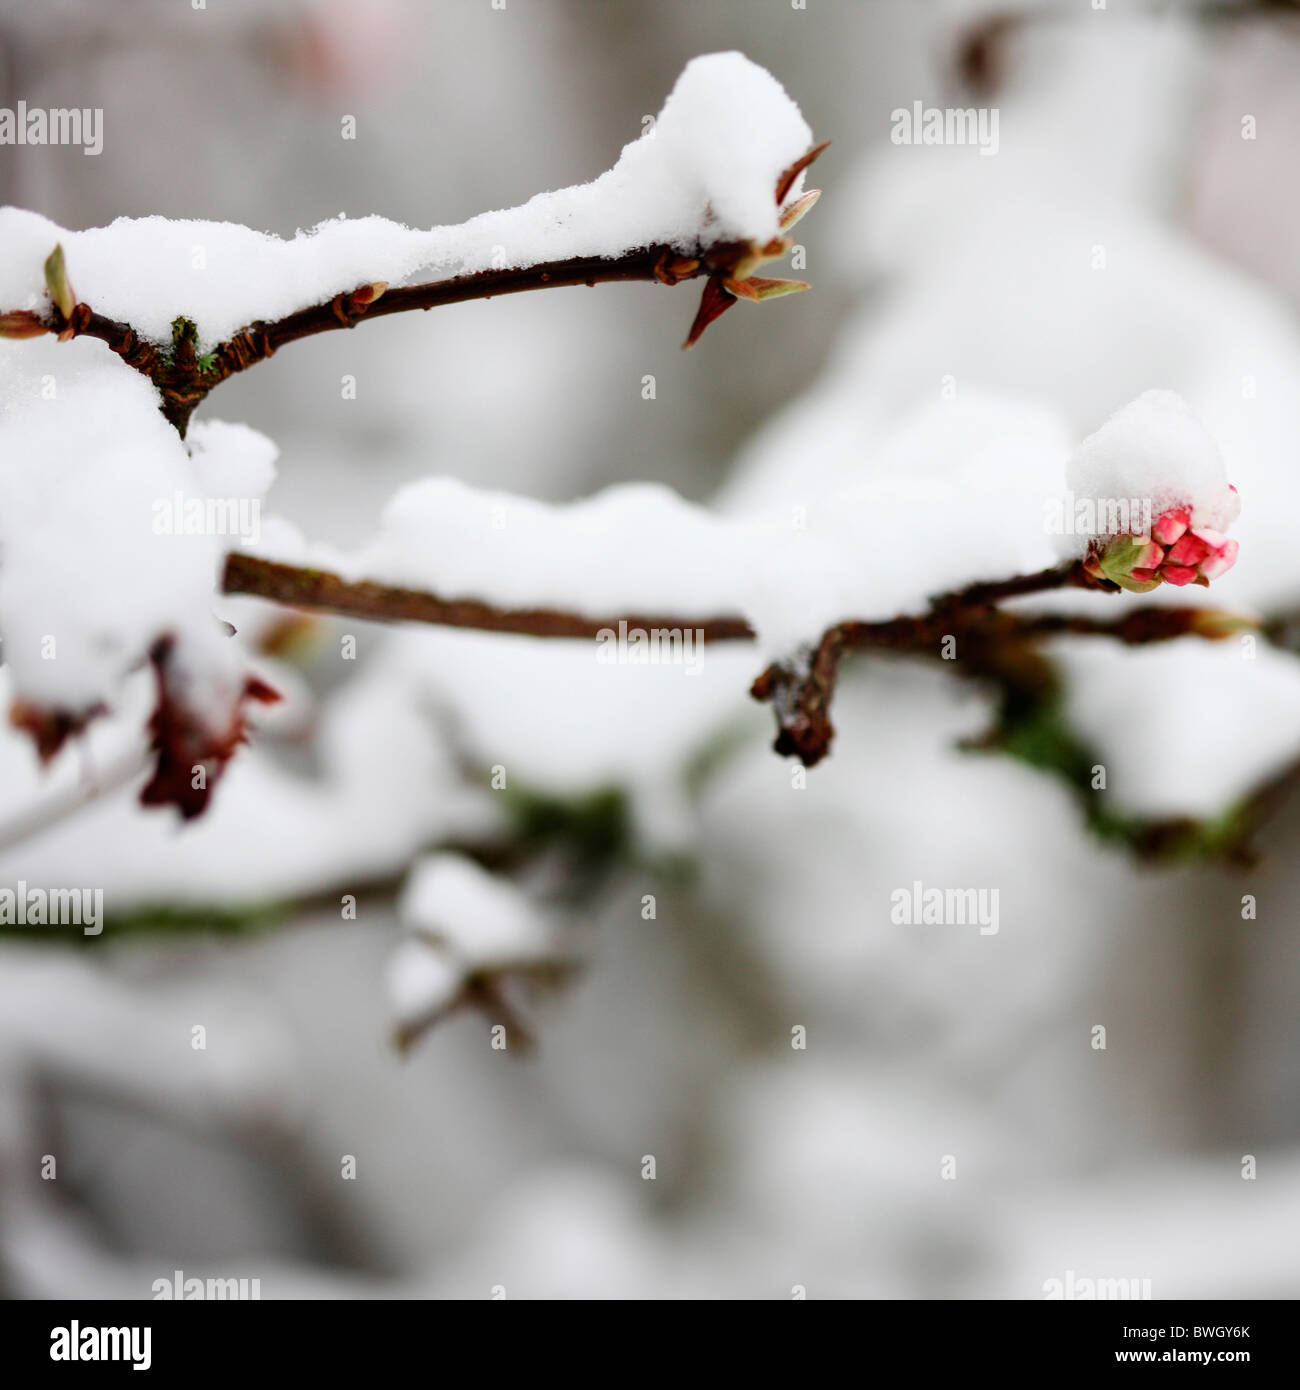 flowering bud coated in winter snow - fine art photography Jane-Ann Butler Photography JABP956 RIGHTS MANAGED - Stock Image